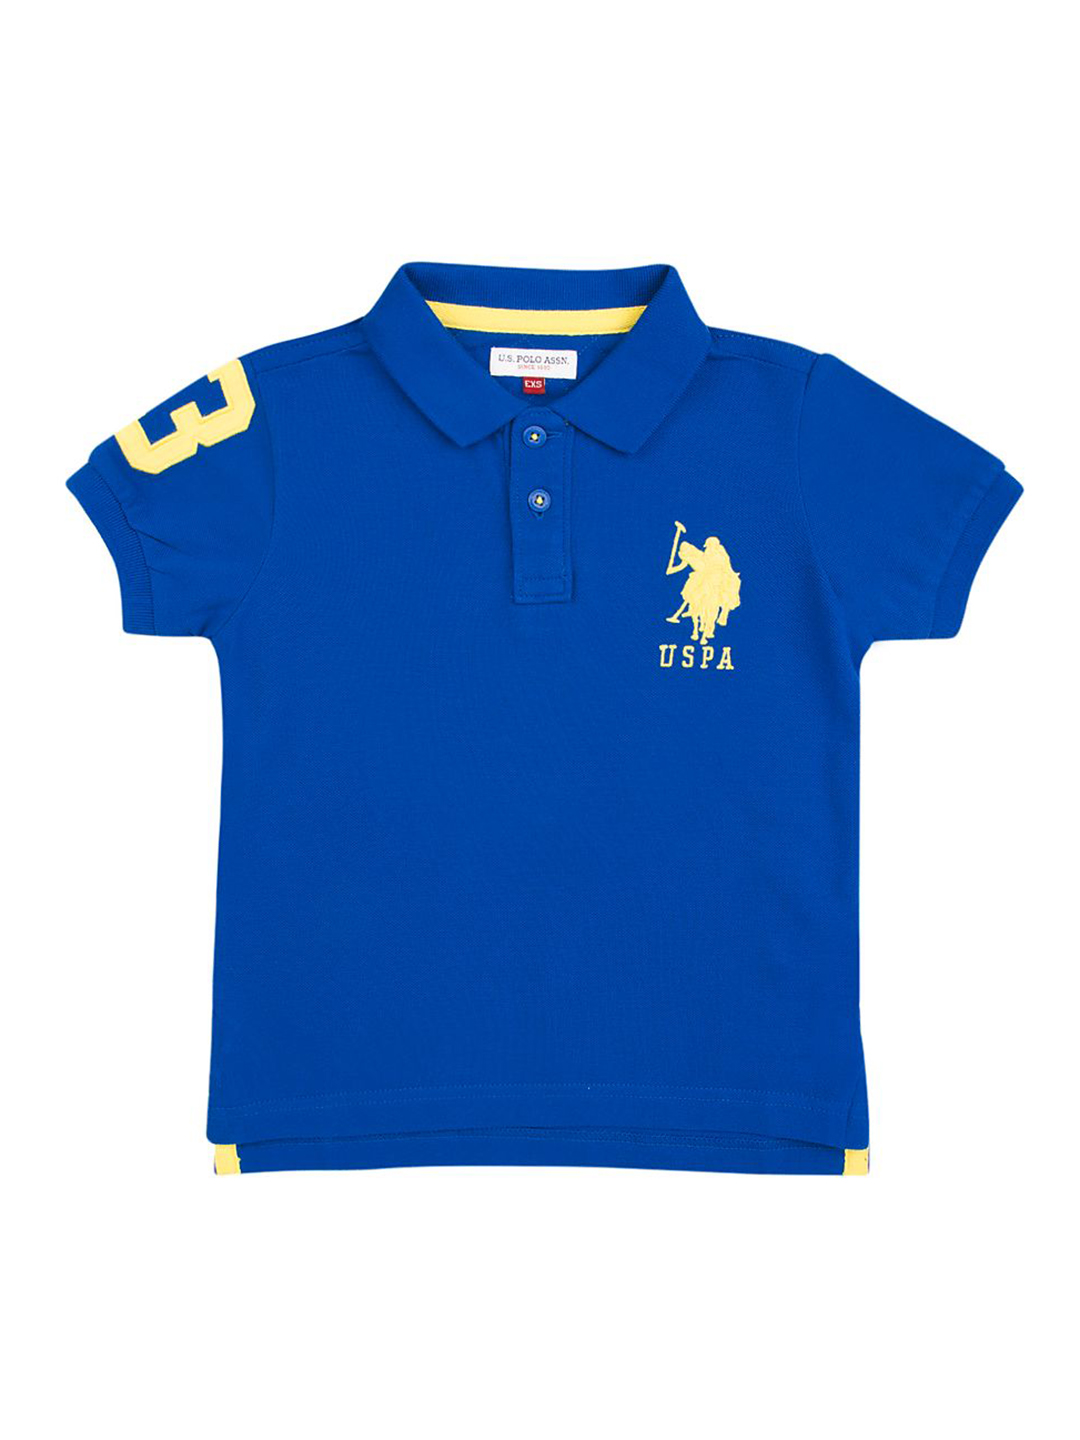 opener consiglio ingoiare  U S Polo royal blue solid t-shirt - G3-BTS1442 | G3fashion.com